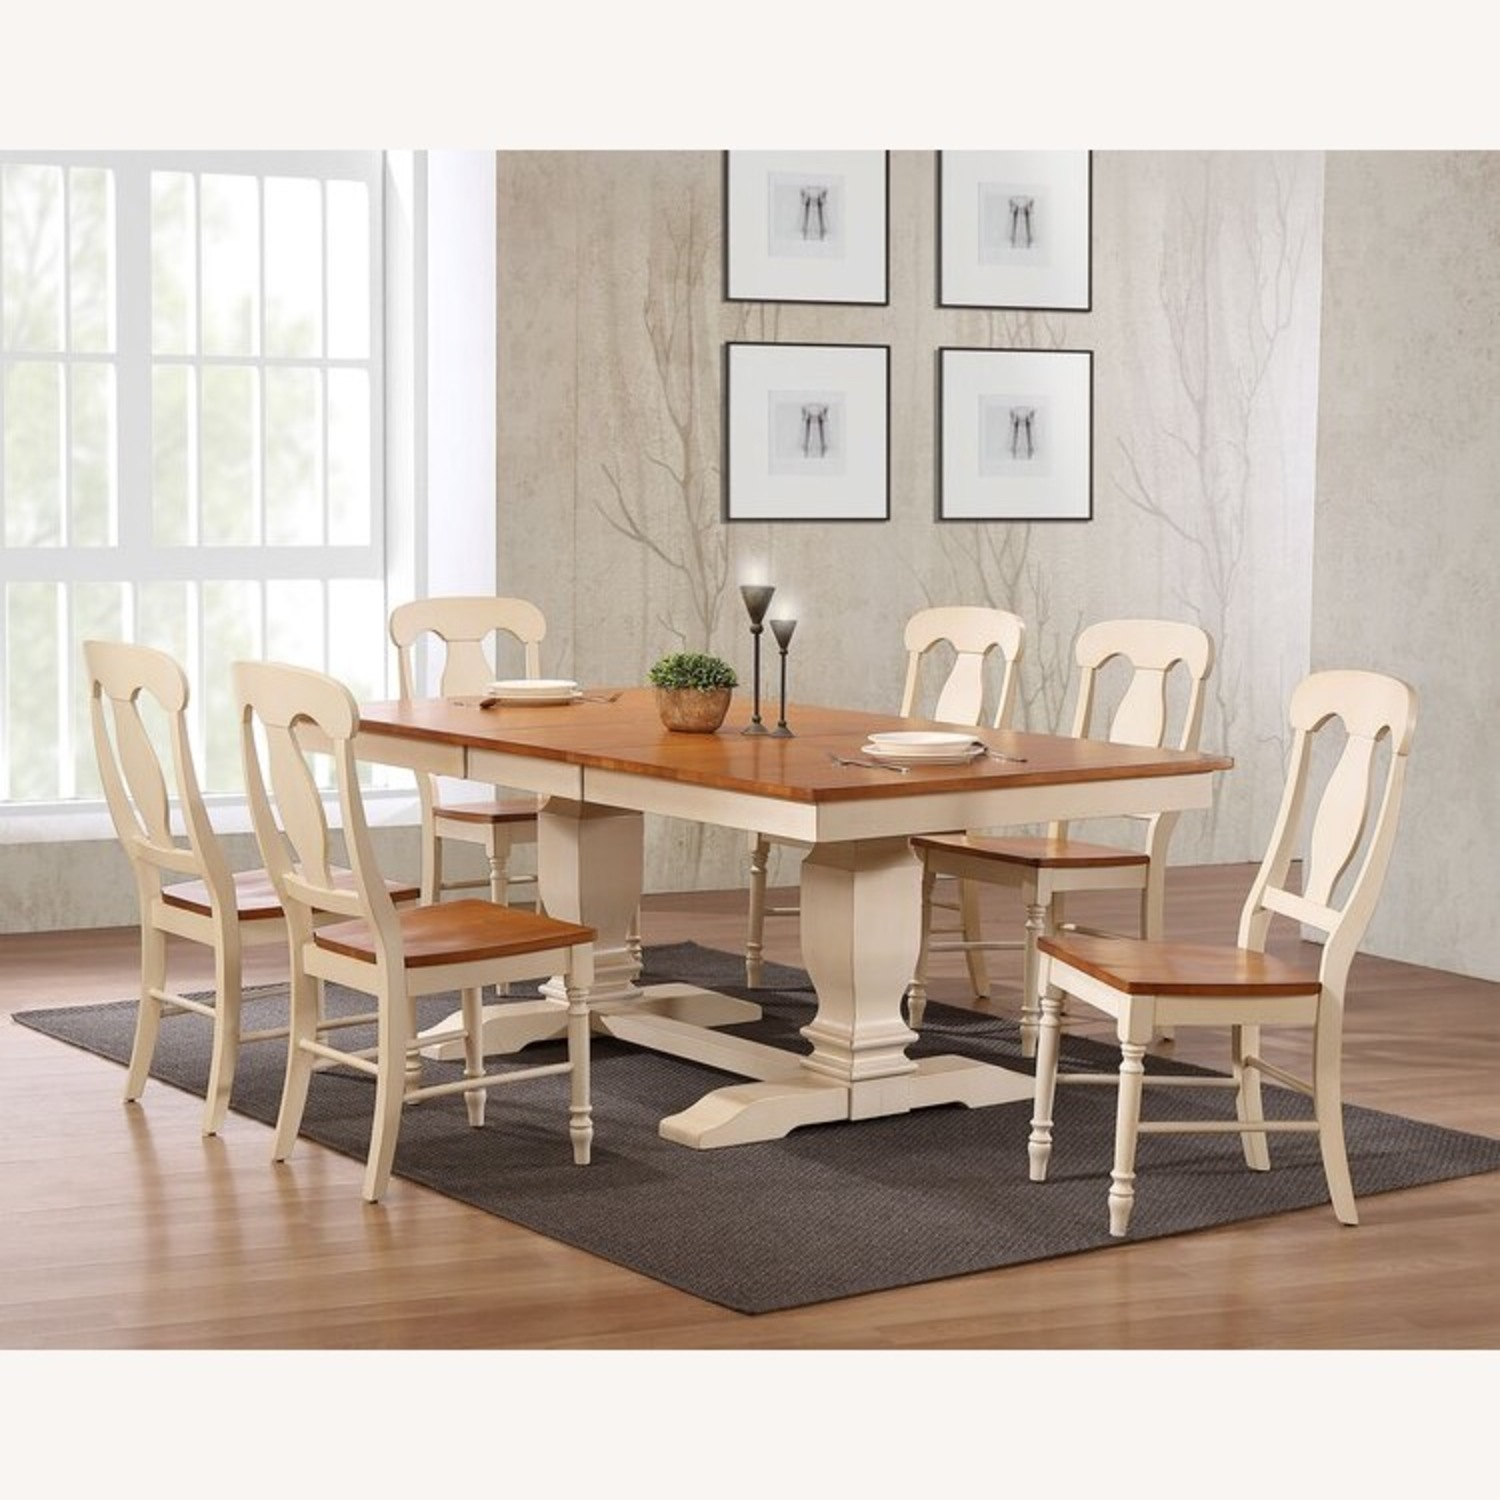 Dinettestyles Solid Wood Extension Dinnig Set - image-3